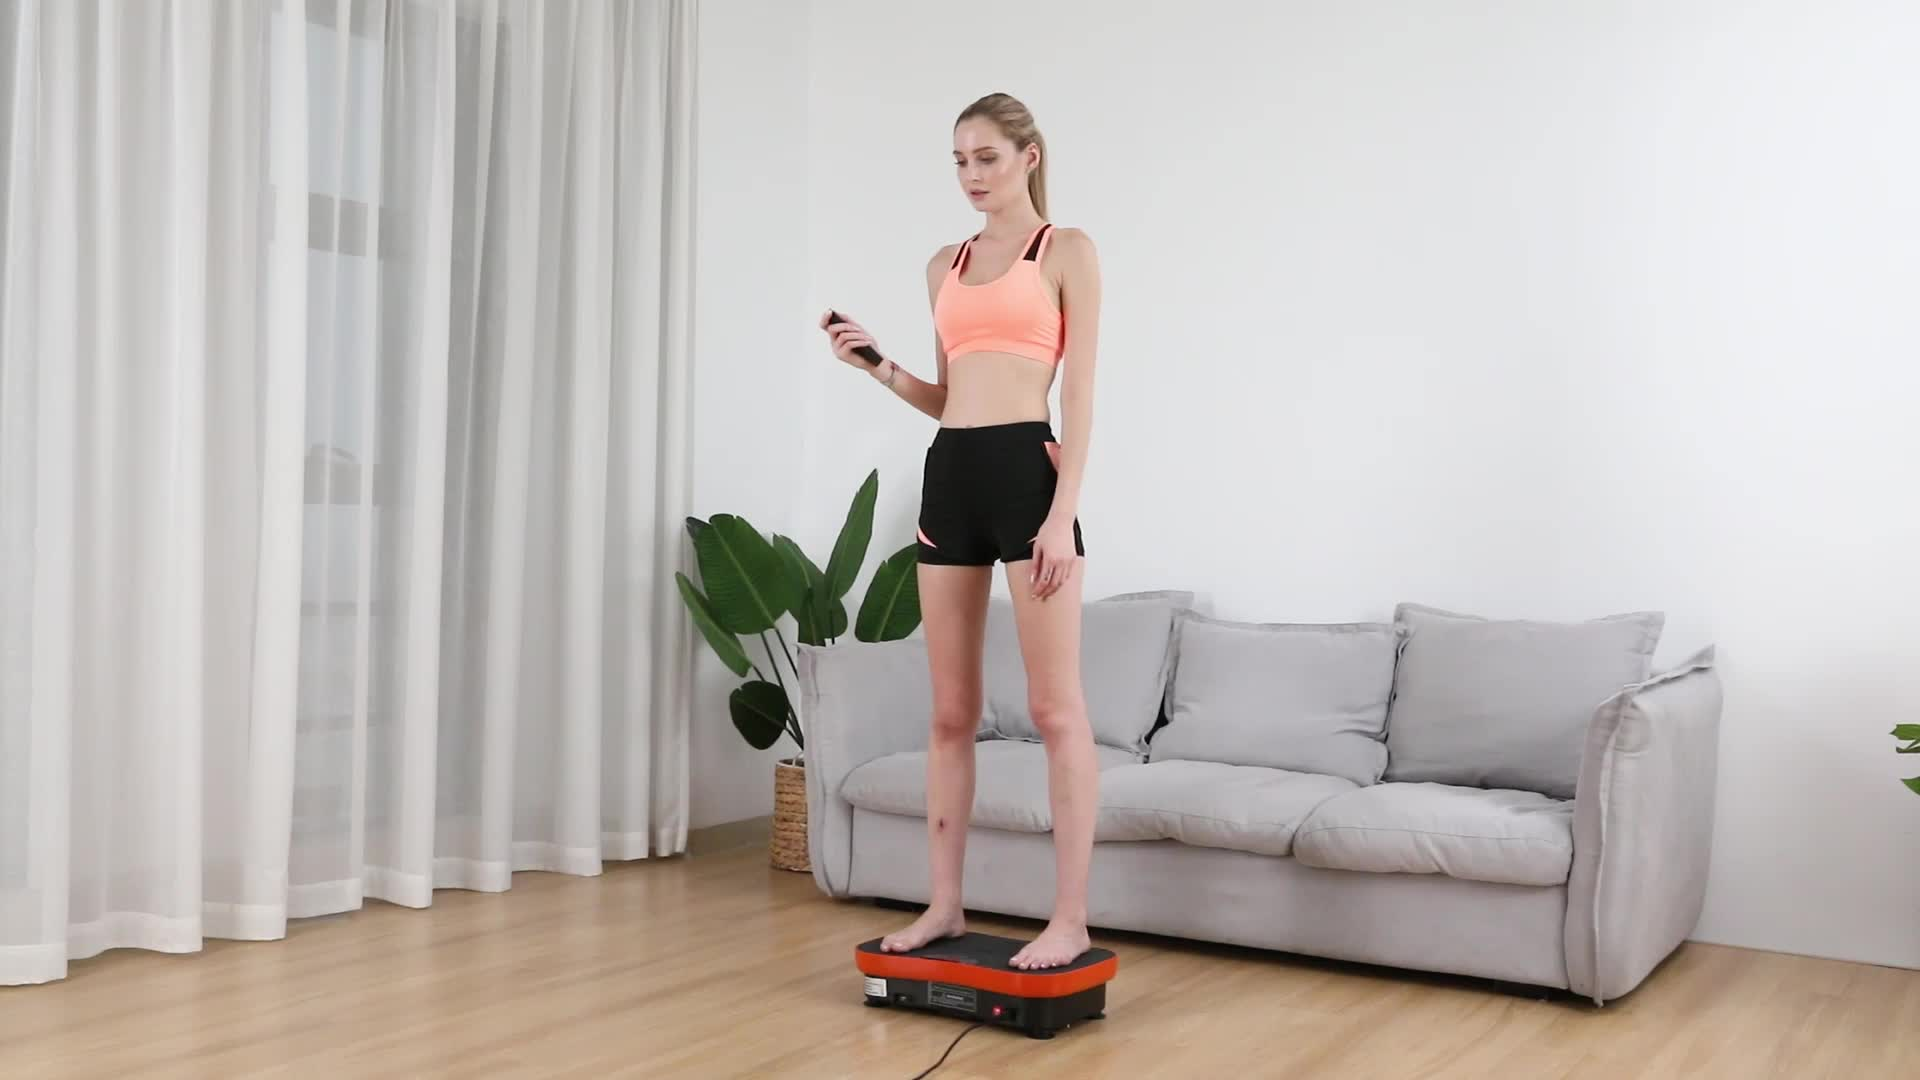 Home fitness equipment whole body exercise machine mini vibration plate with 200W